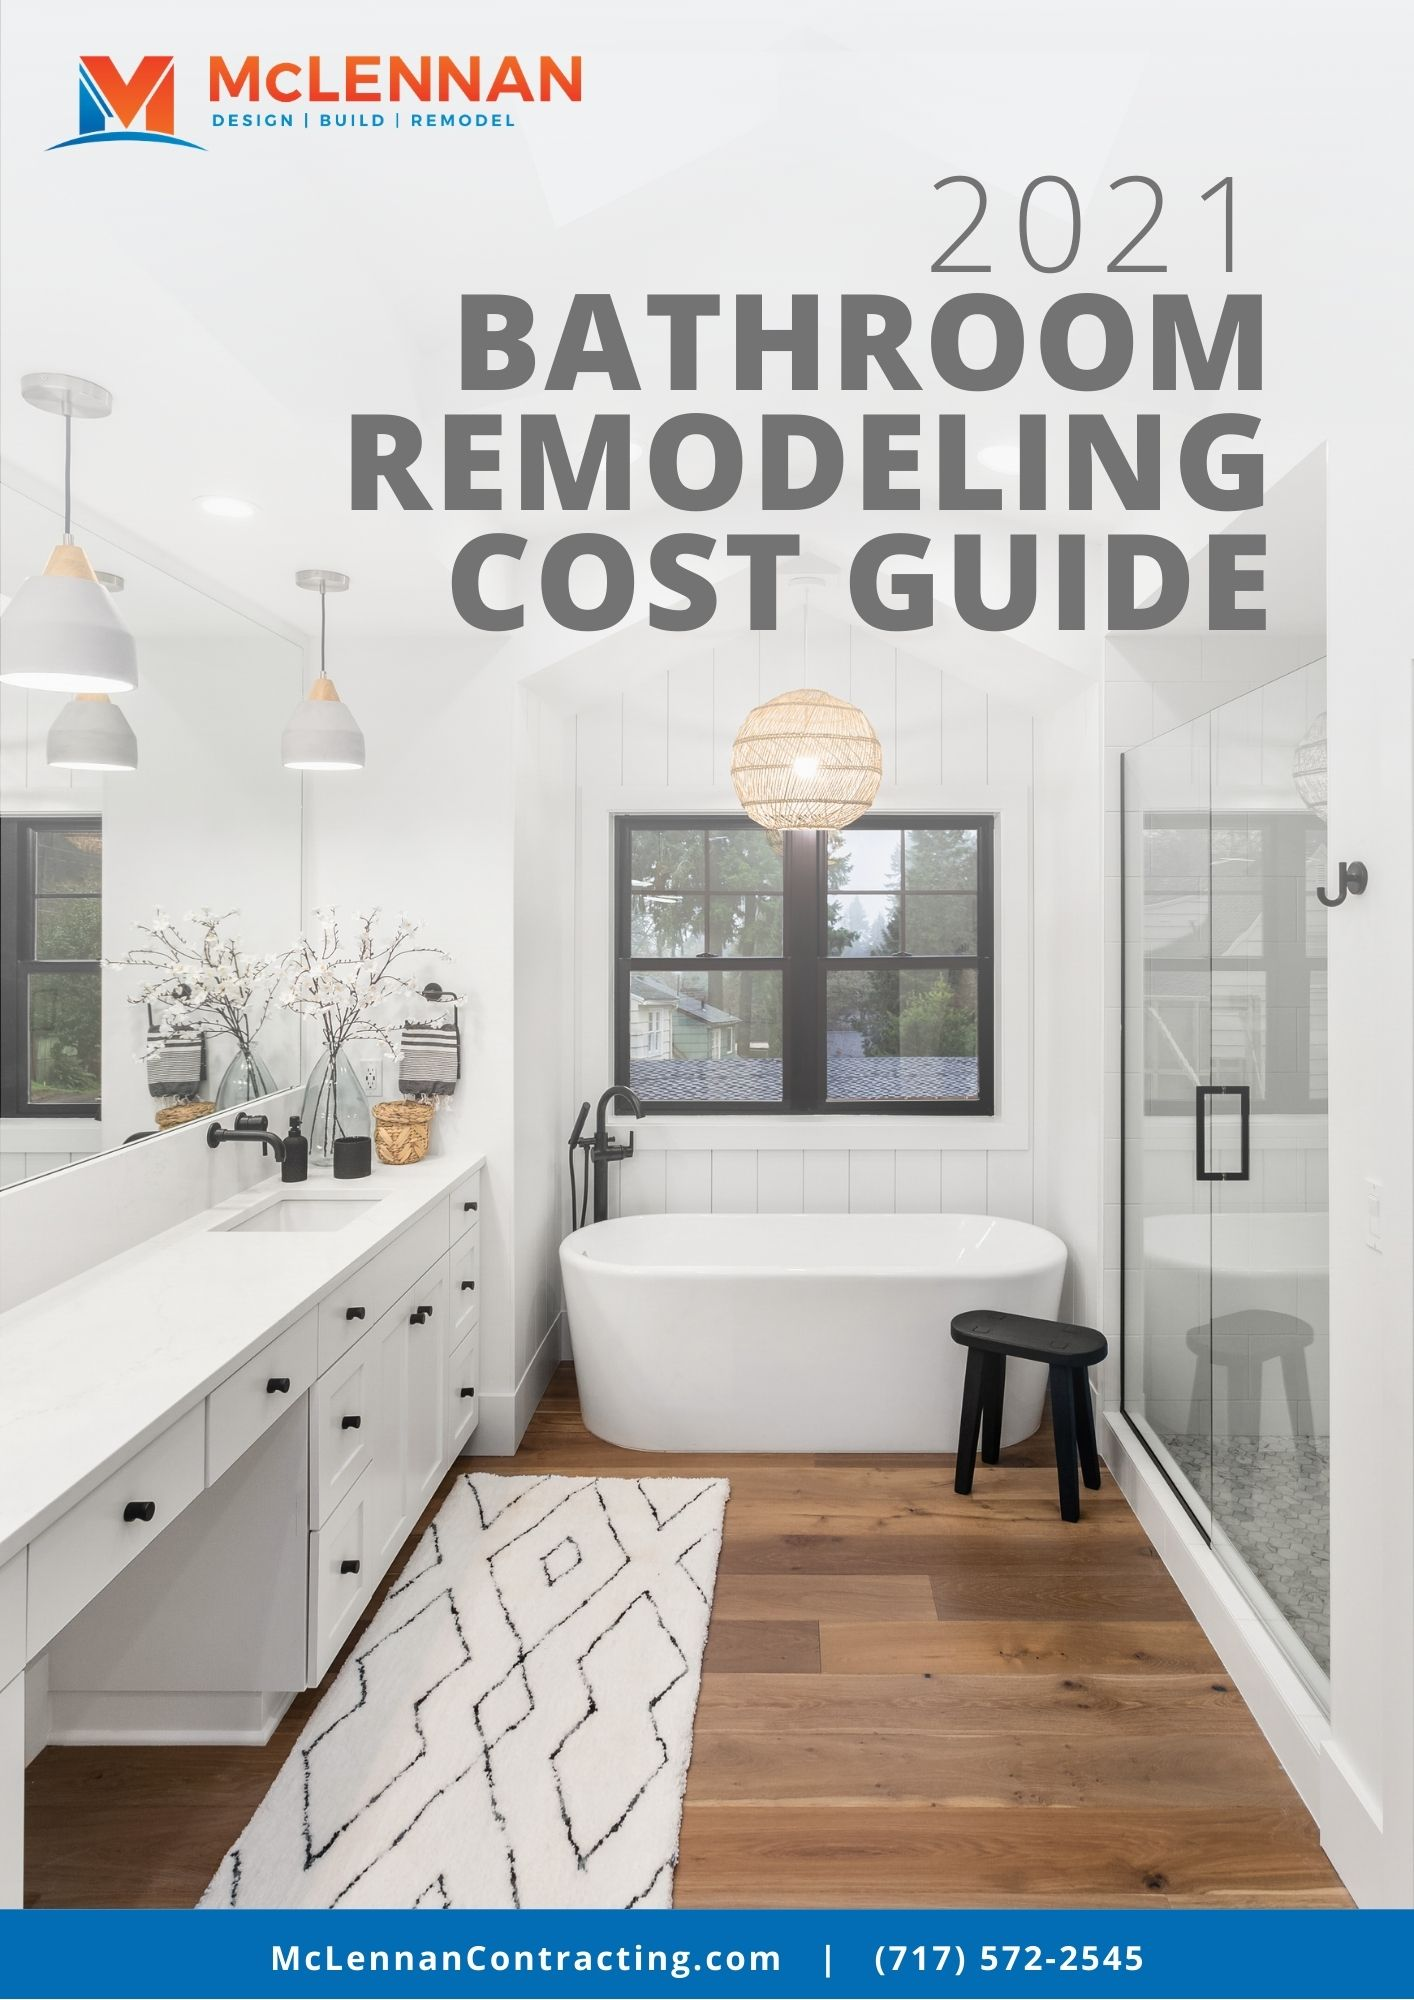 2021 Bathroom Remodeling Cost Guide - McLennan Contracting